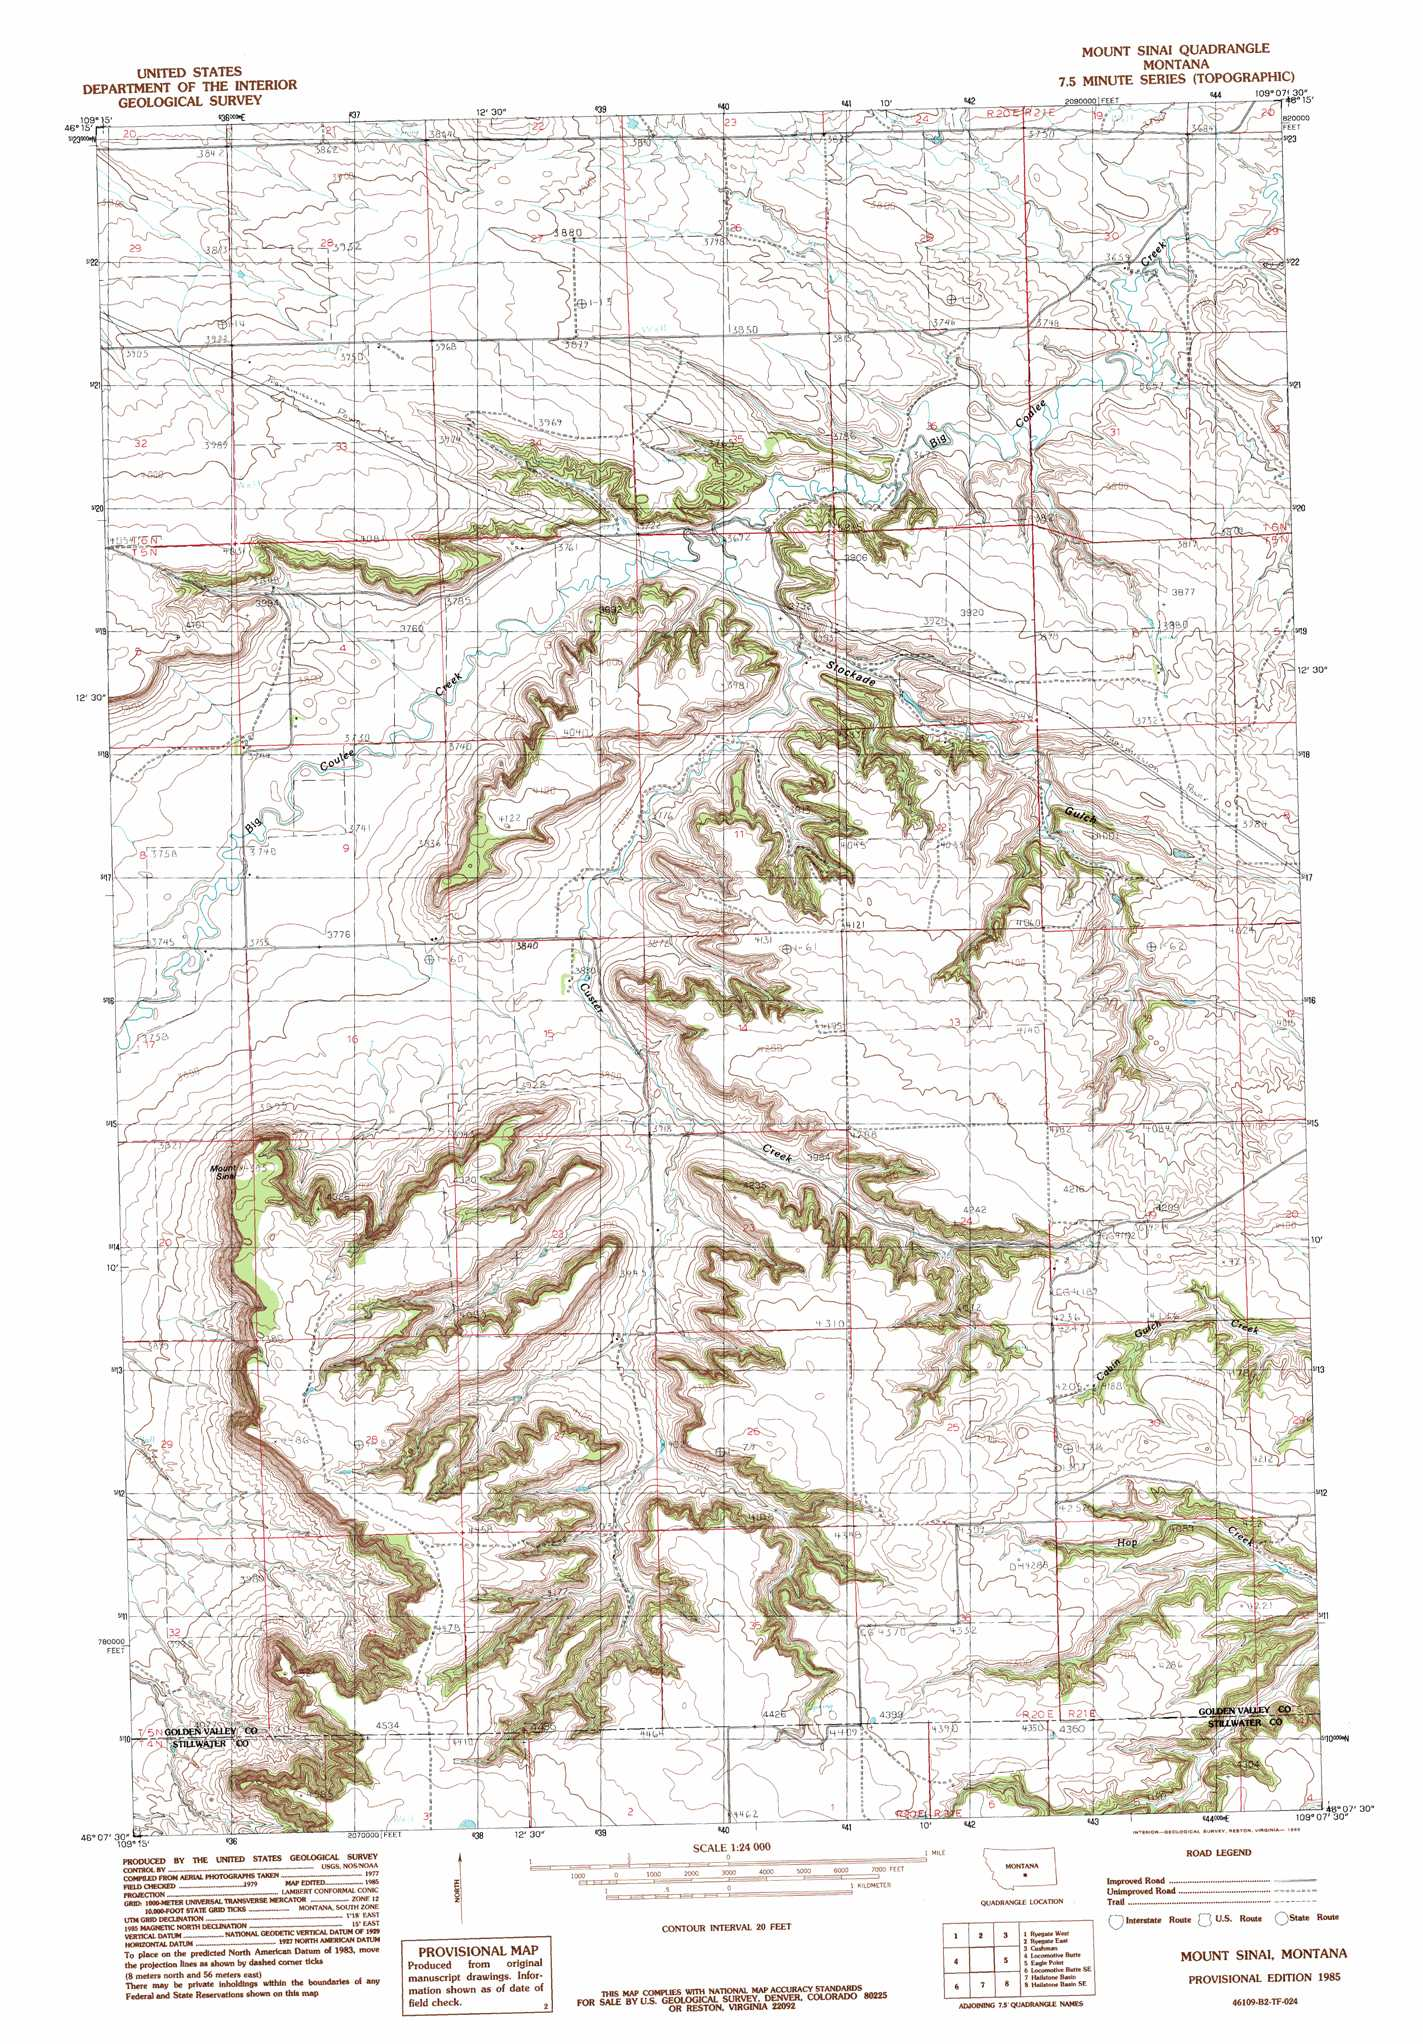 Mount Sinai Topographic Map Mt Usgs Topo Quad 46109b2